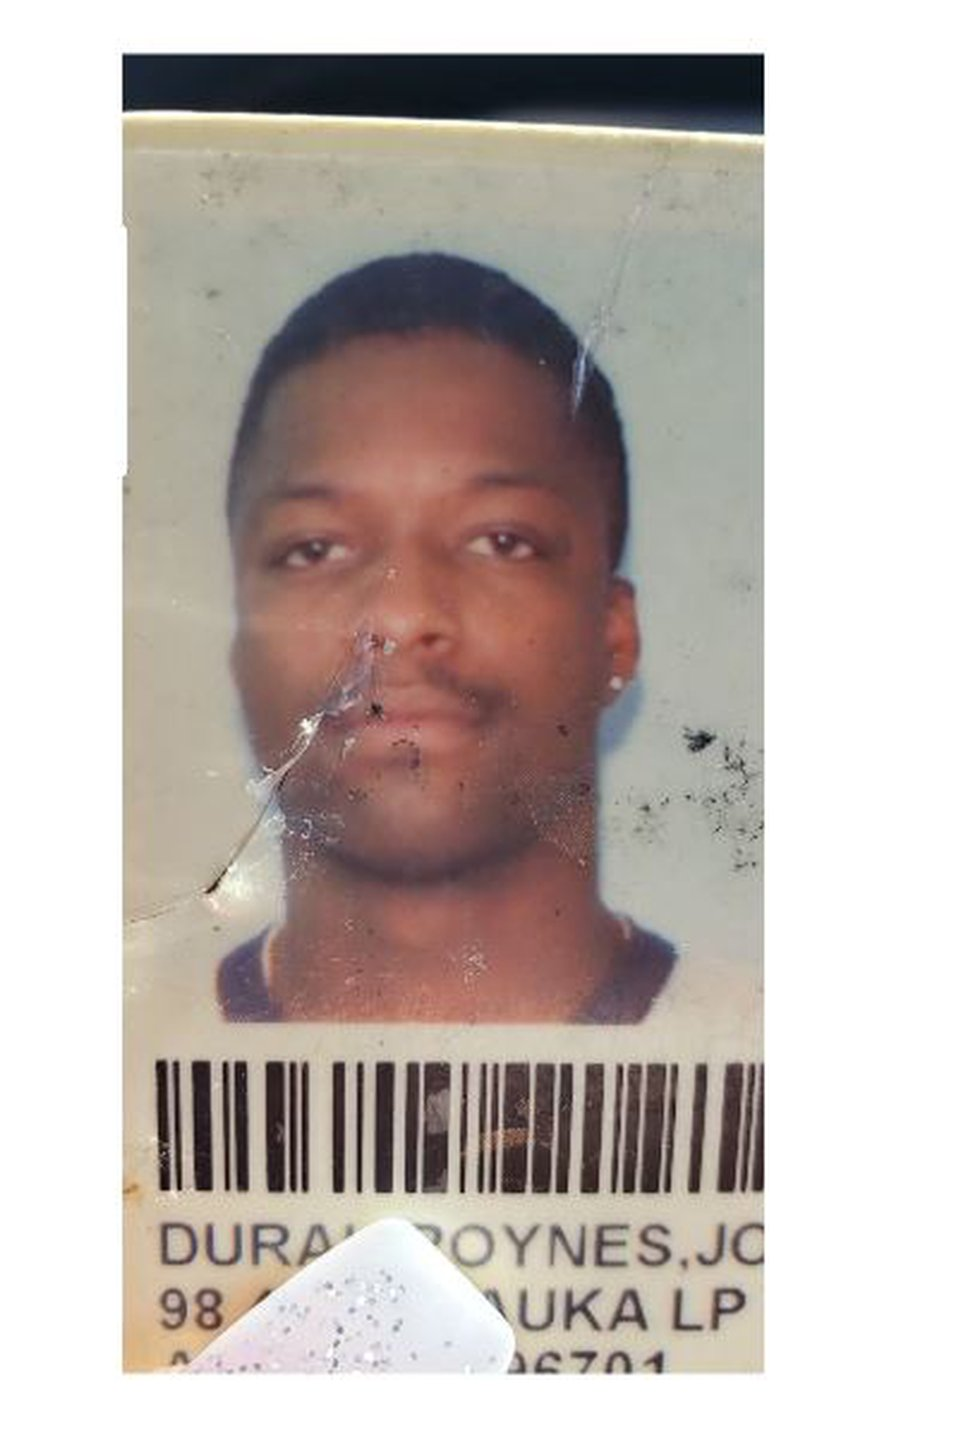 Roynes Dural at 28 years old when he wrongfully convicted of sex assault